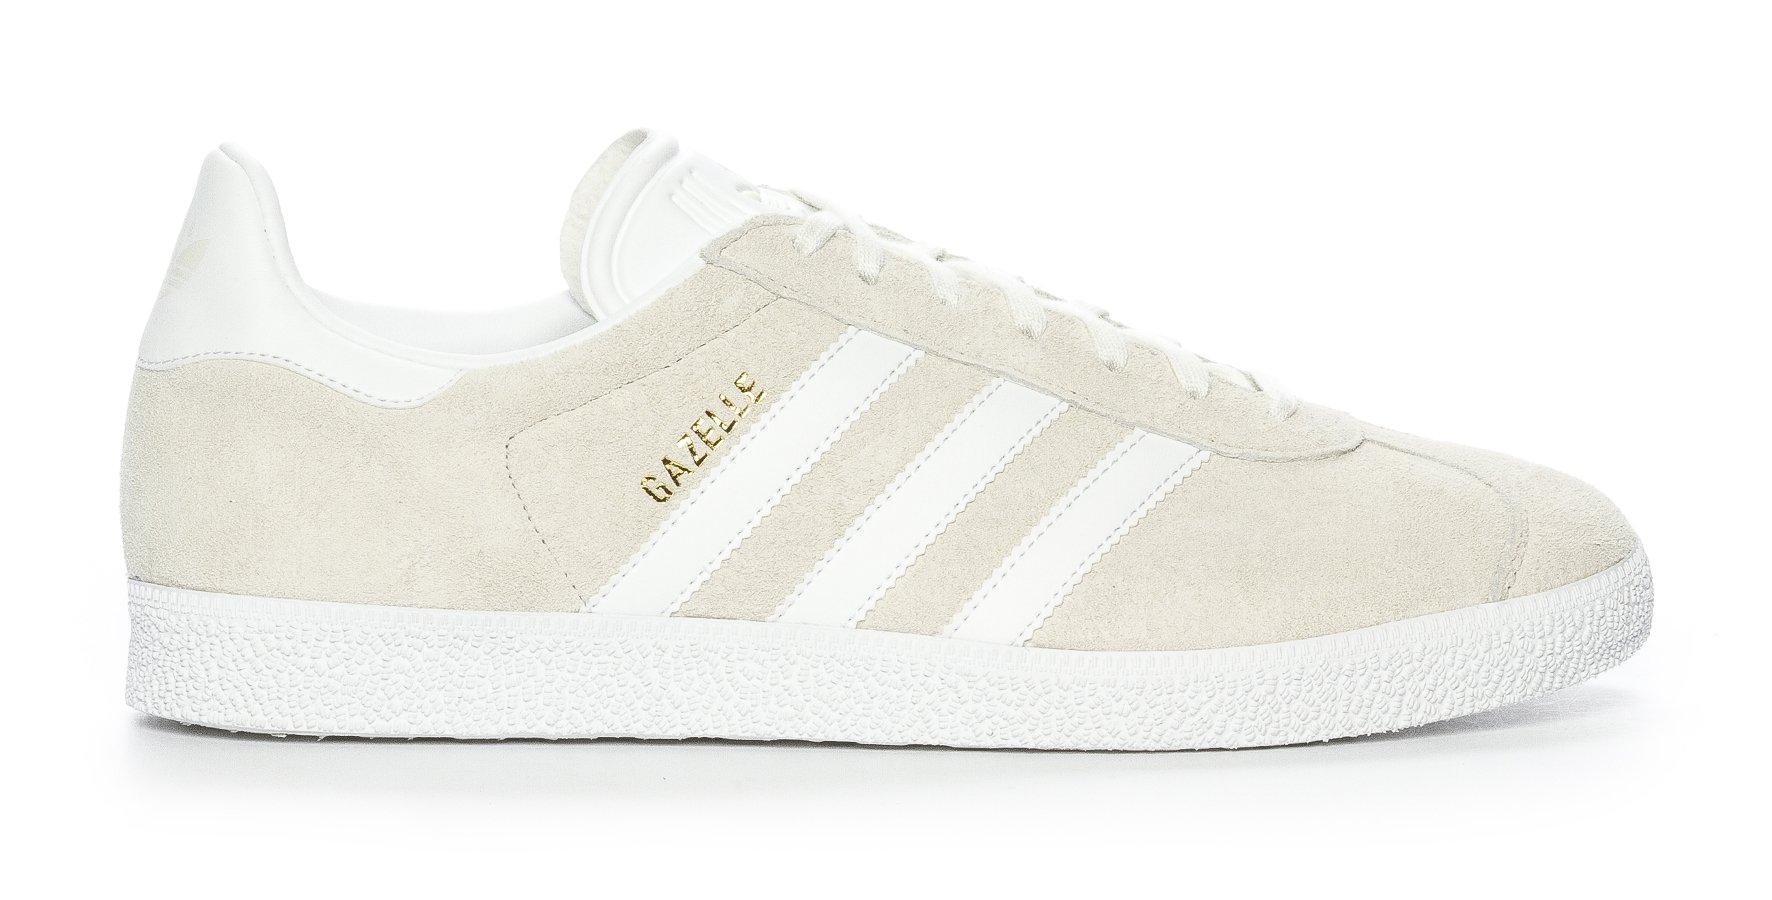 wholesale dealer 788a8 22b37 ADIDAS Gazelle Röd - 304393